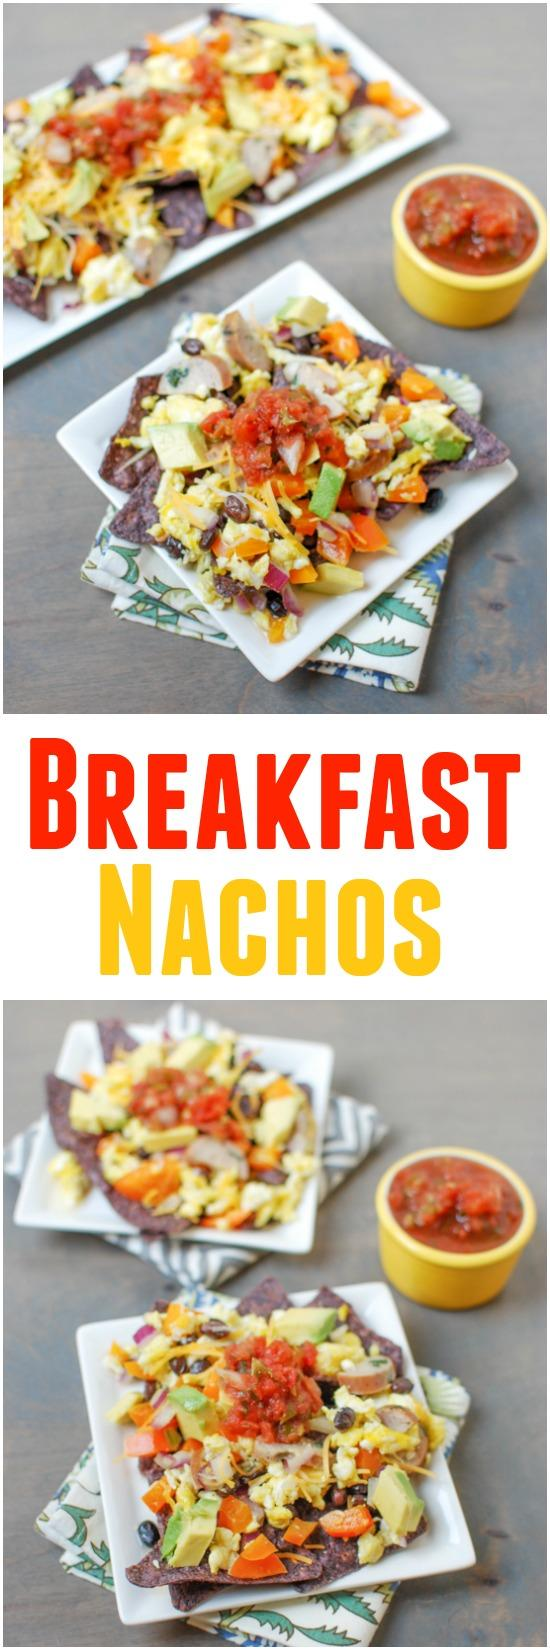 Gluten-free and easy to customize, these Breakfast Nachos are quick, easy way to change up your breakfast routine!